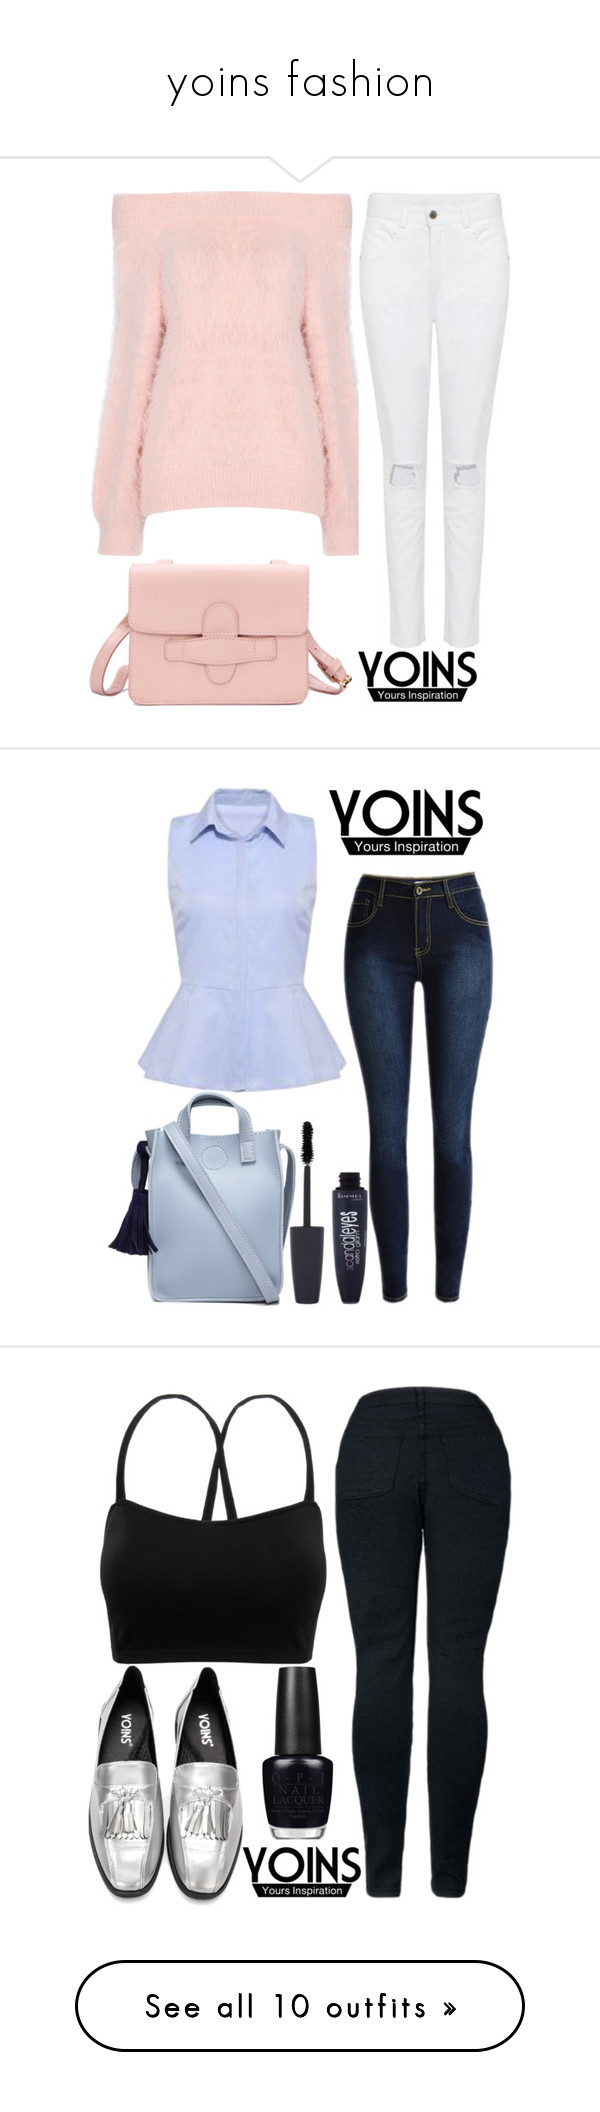 """""""yoins fashion"""" by j-n-a ❤ liked on Polyvore featuring yoins, yoinscollection, loveyoins, Rimmel, OPI, NYX, Lancôme, Essence, Yves Saint Laurent and Christian Dior"""